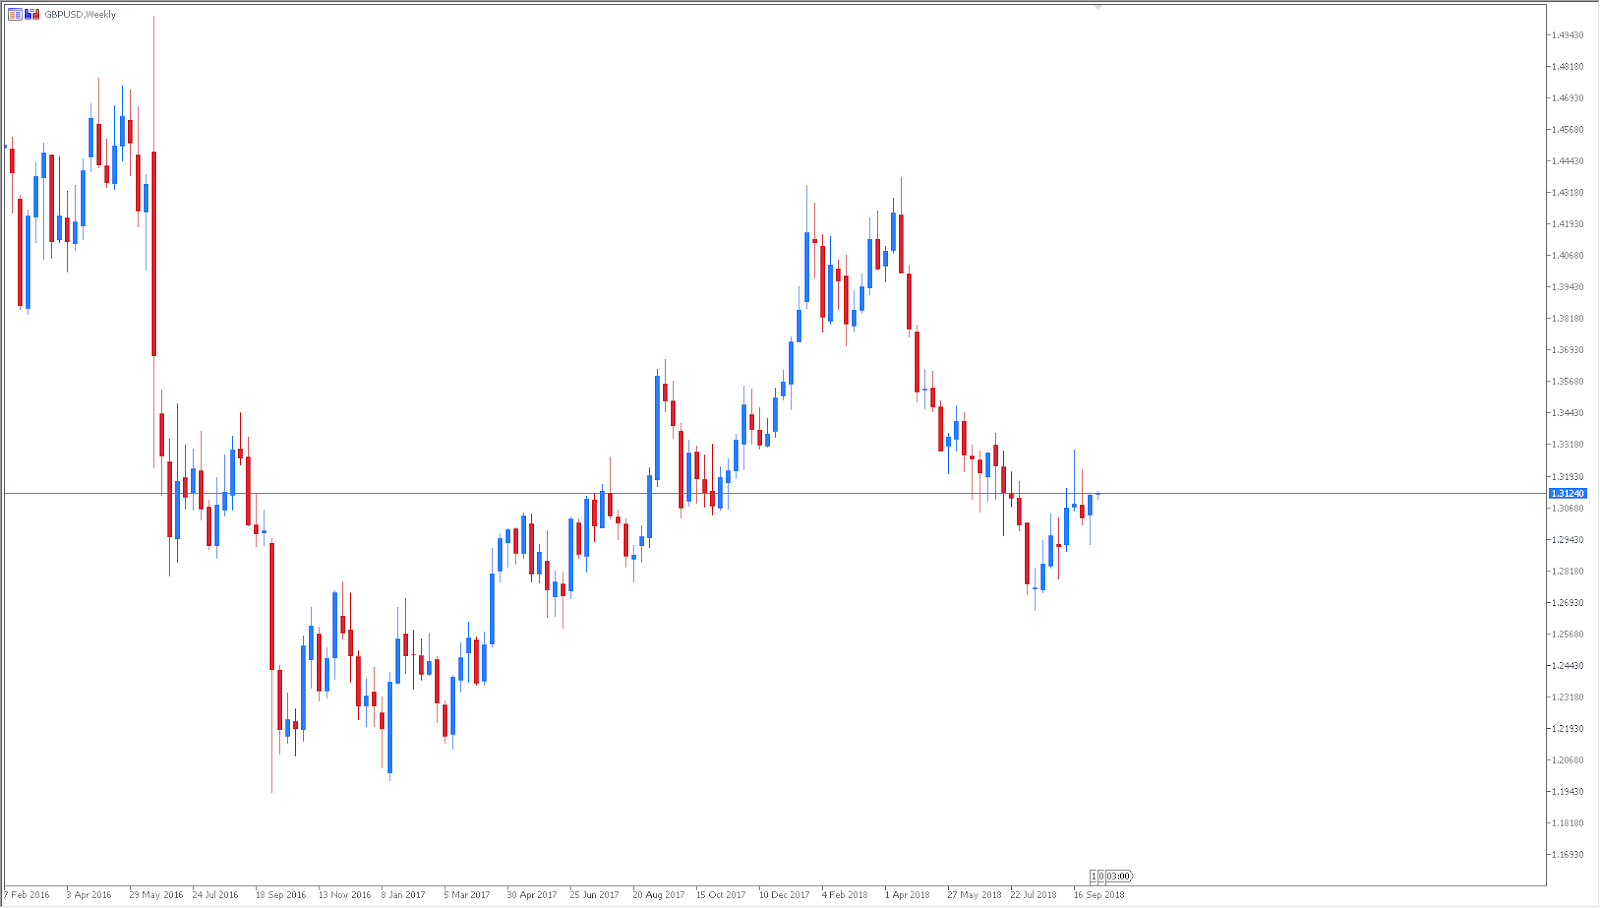 GBPUSD Daily Chart - Technical Analysis